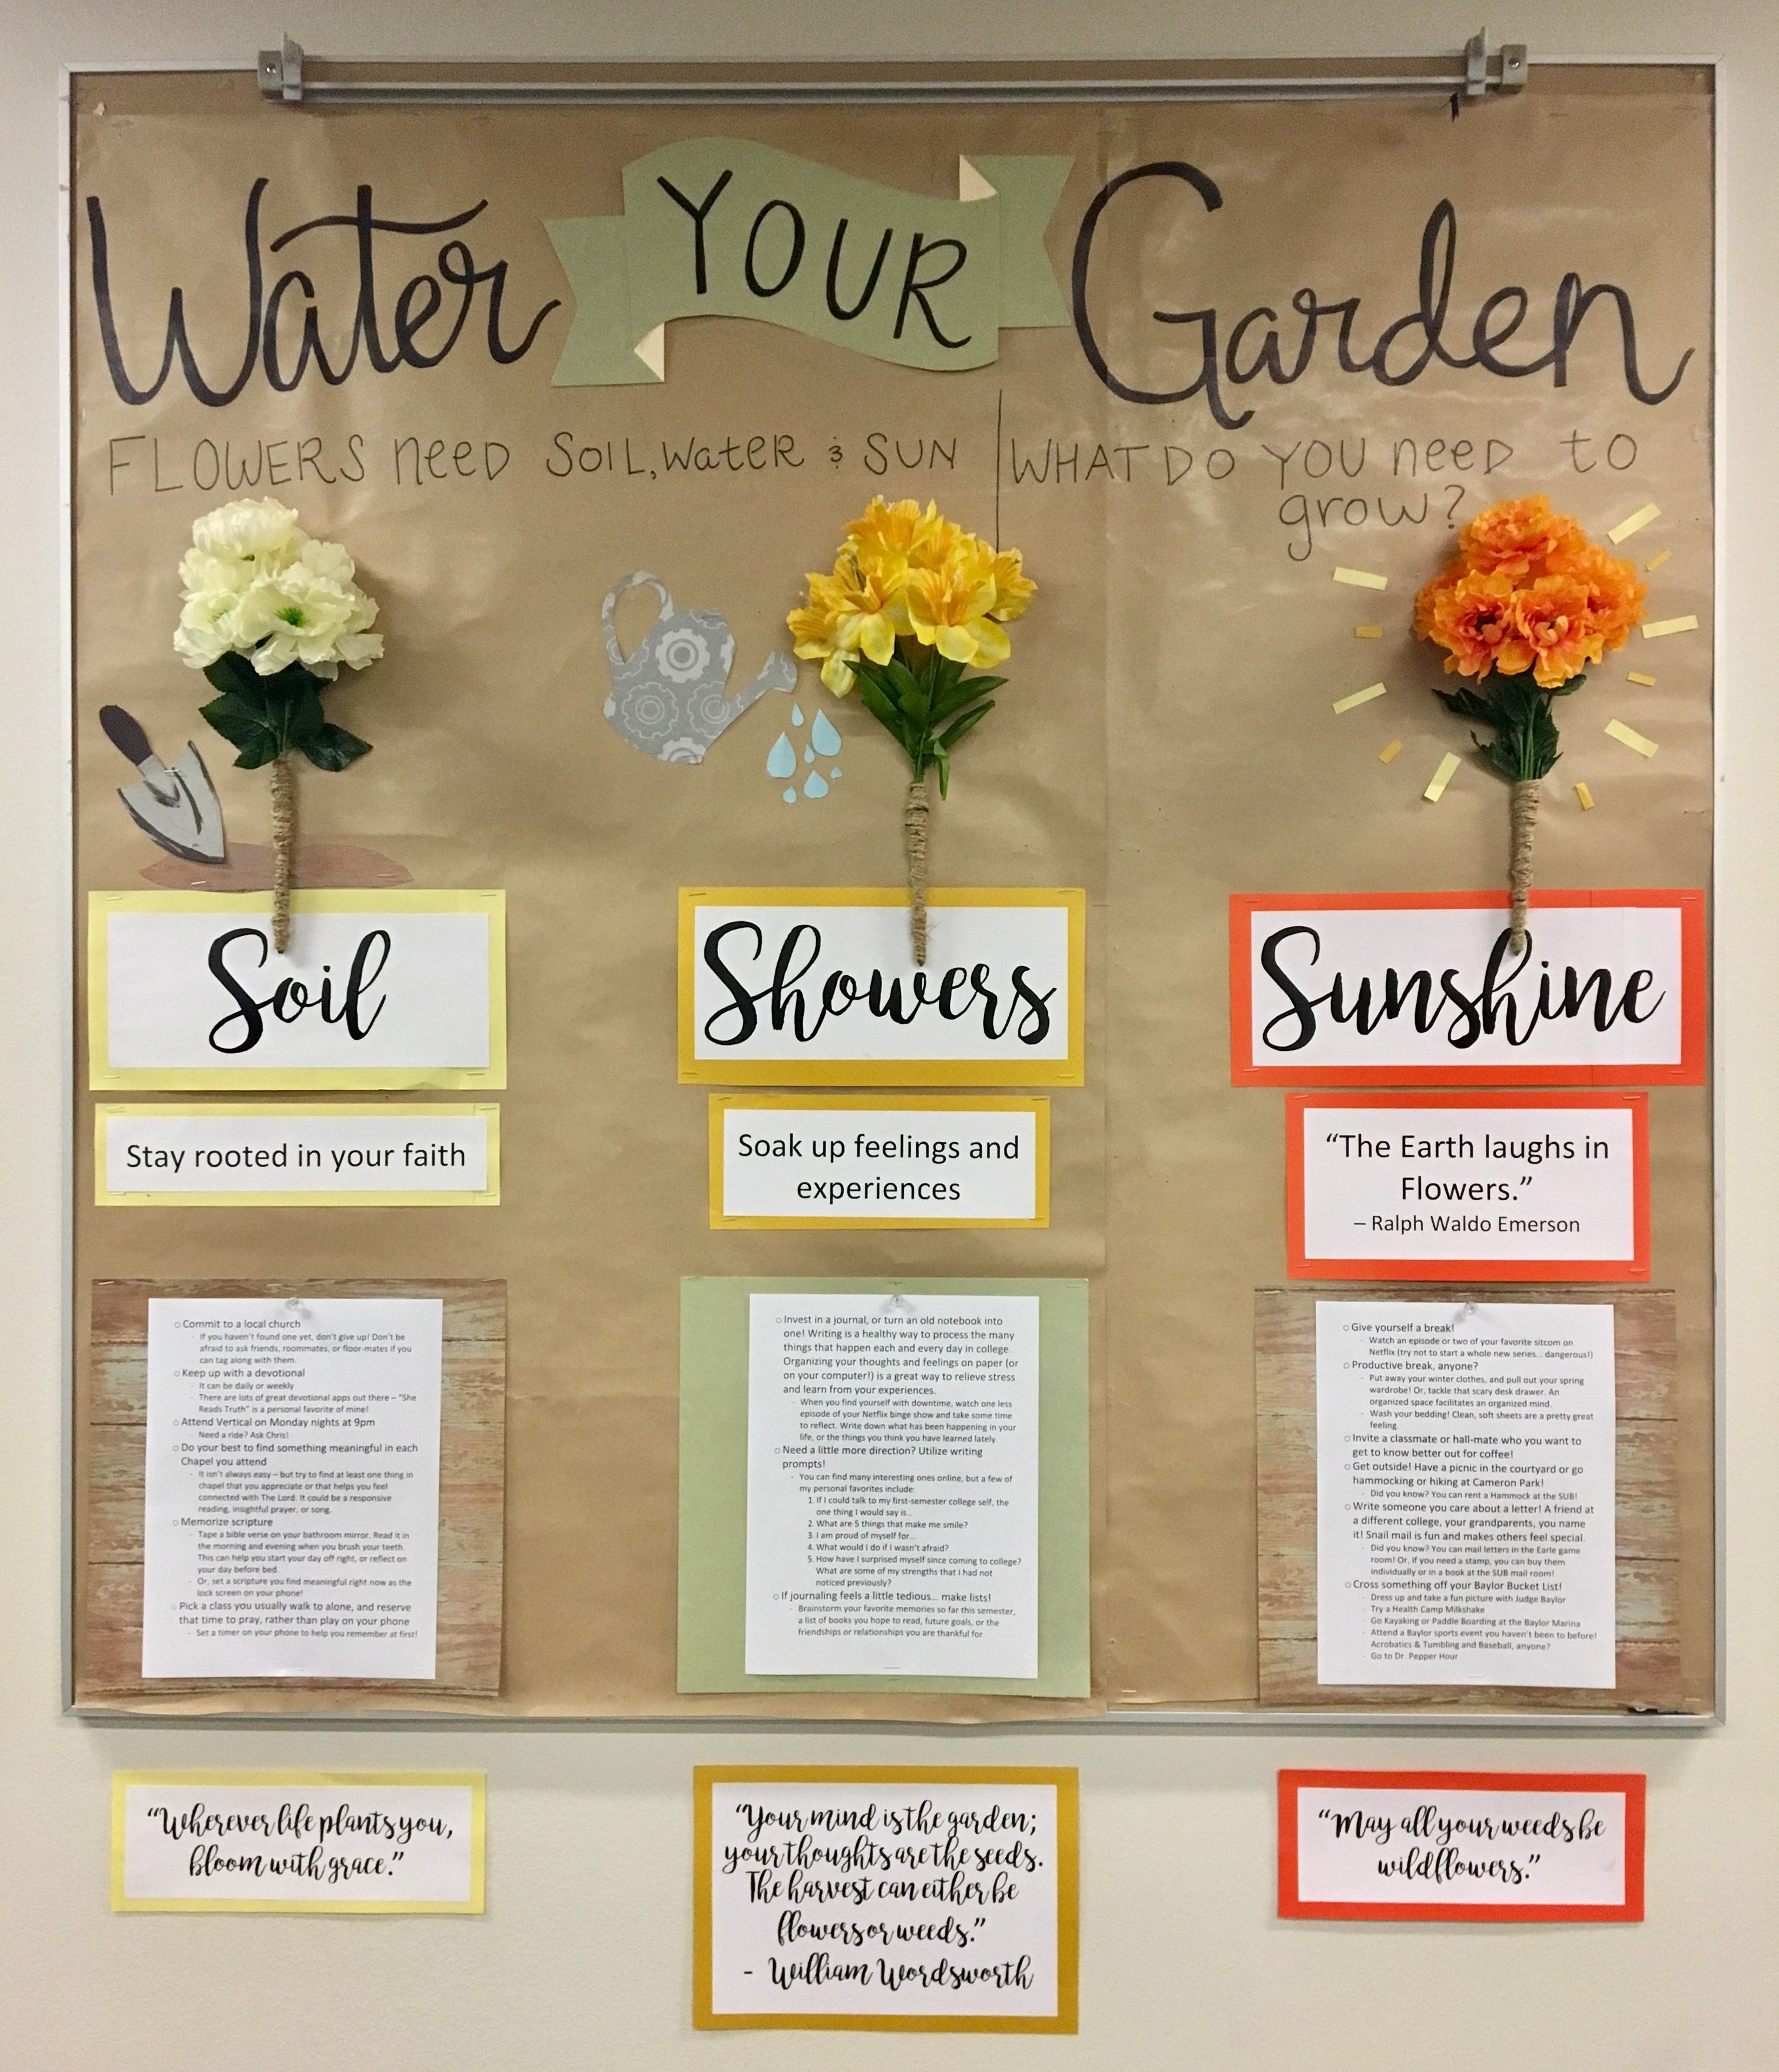 Water your Garden Bulletin Board. Flowers need sun, water & soil. What do you need to grow in college? Faith, self-reflection & experiences. #rabulletinboards